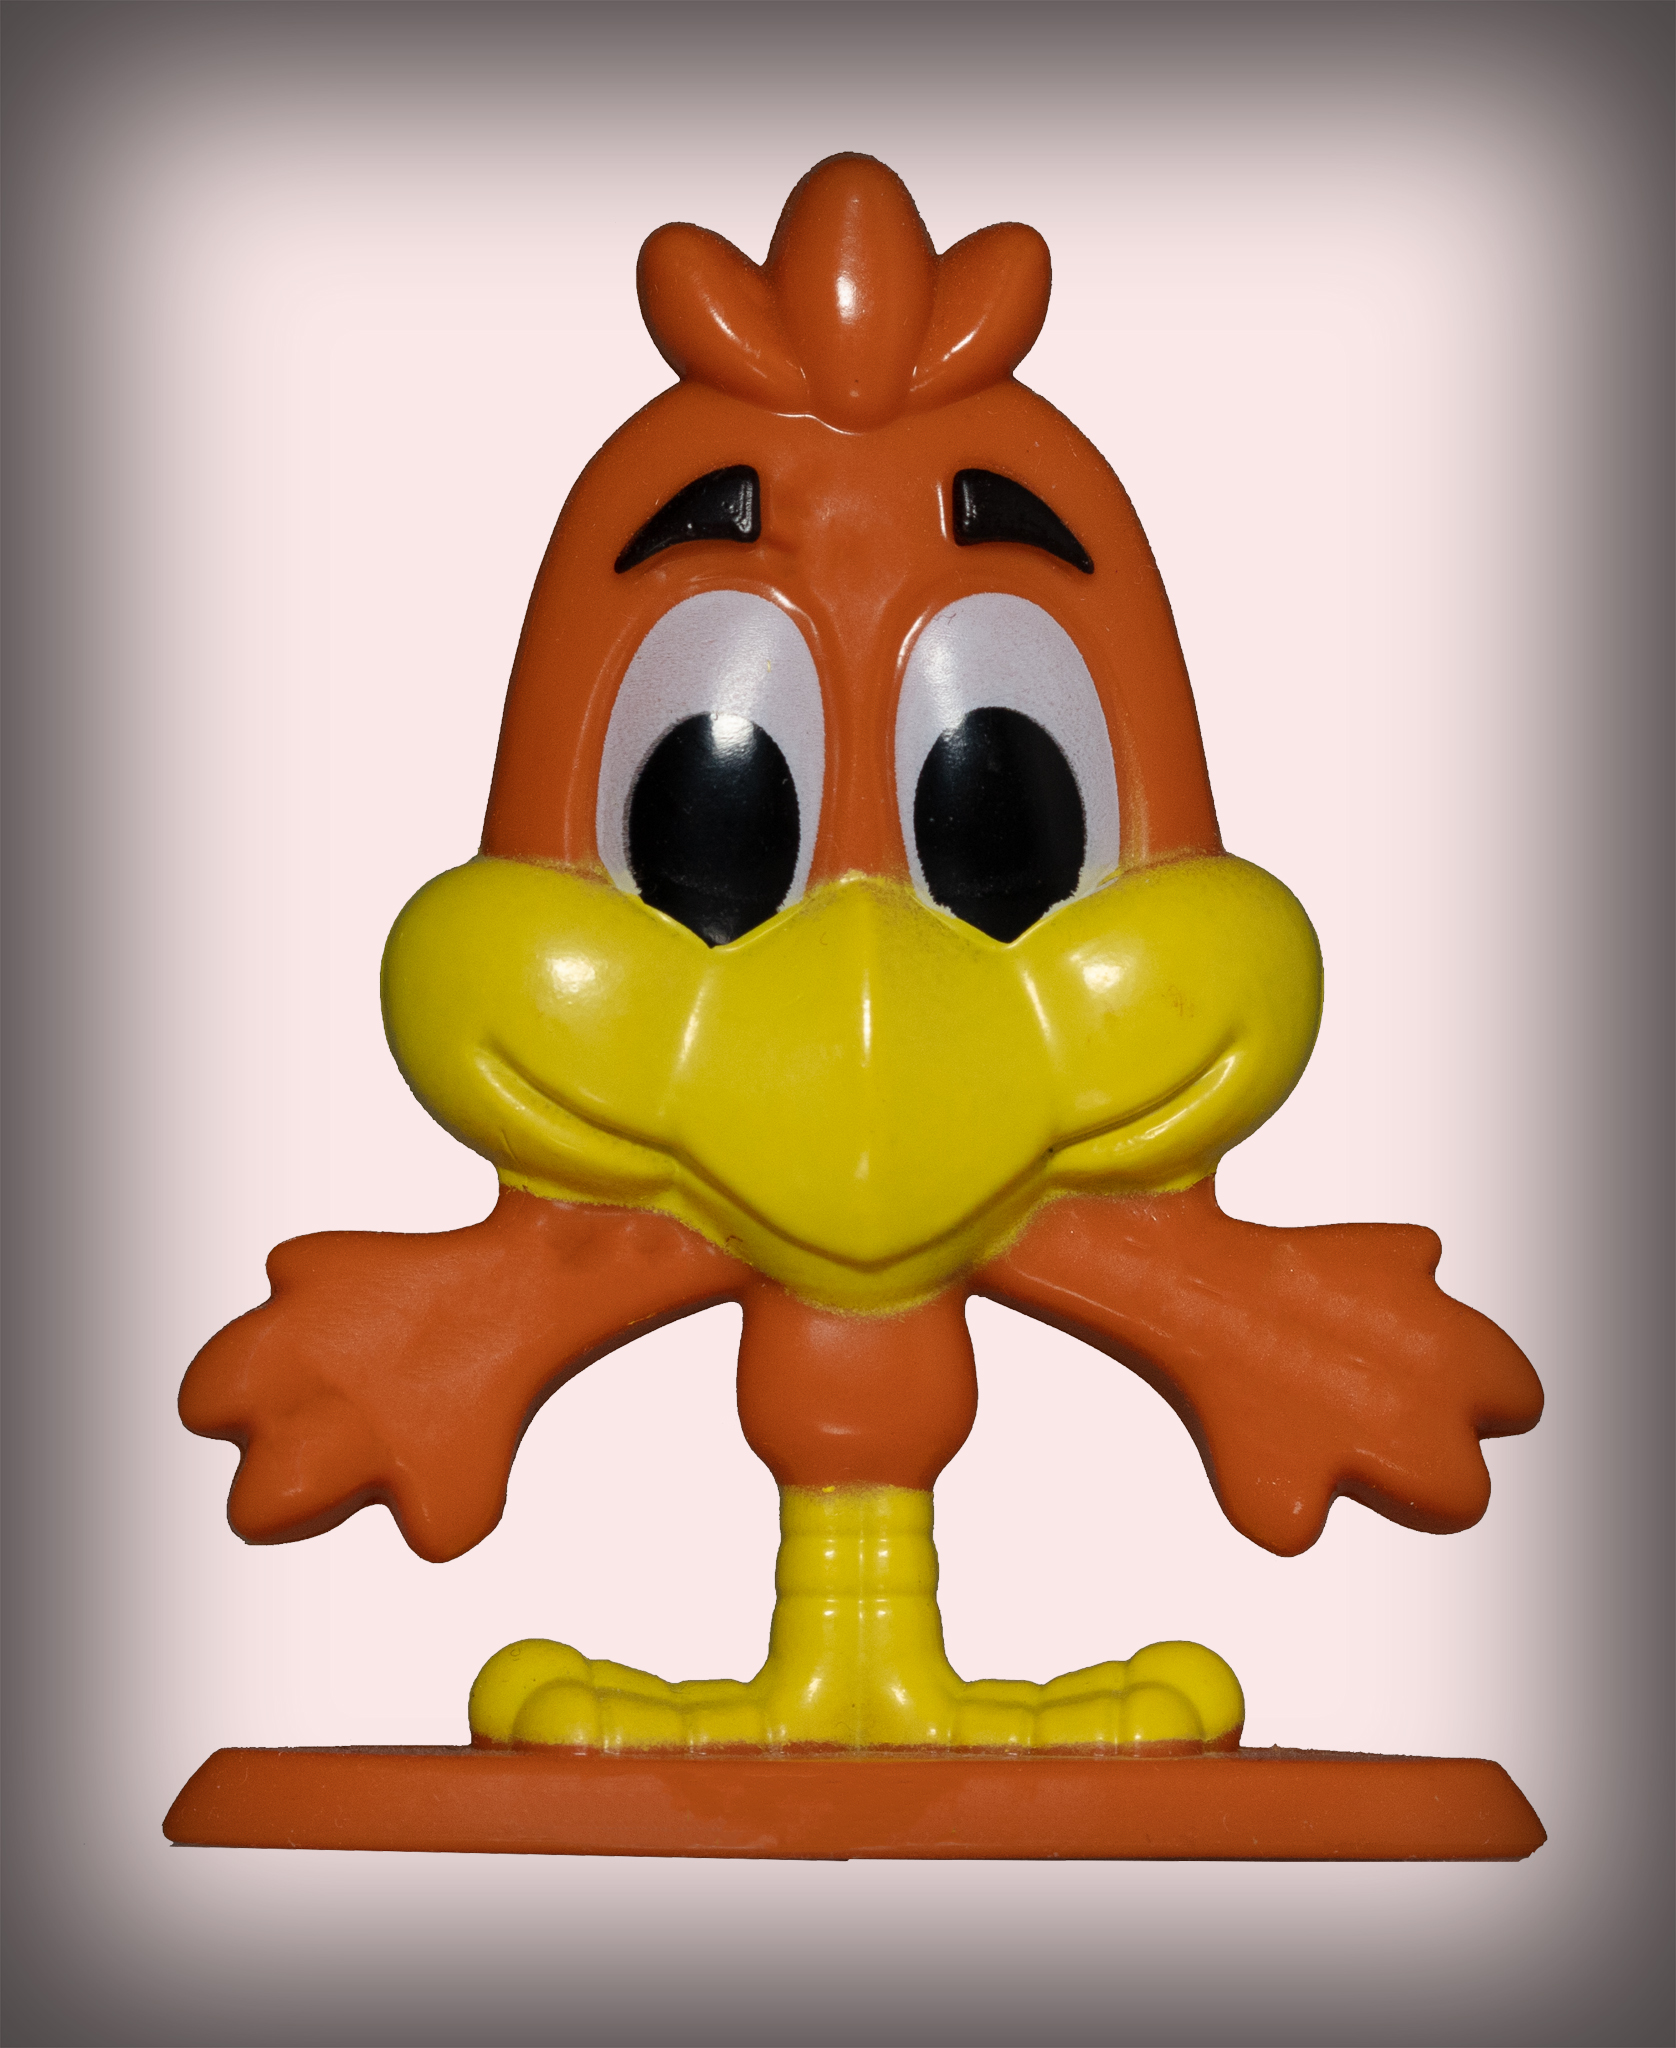 Name:  004A0334 Cereal Box Toy.jpg Views: 43 Size:  1.12 MB